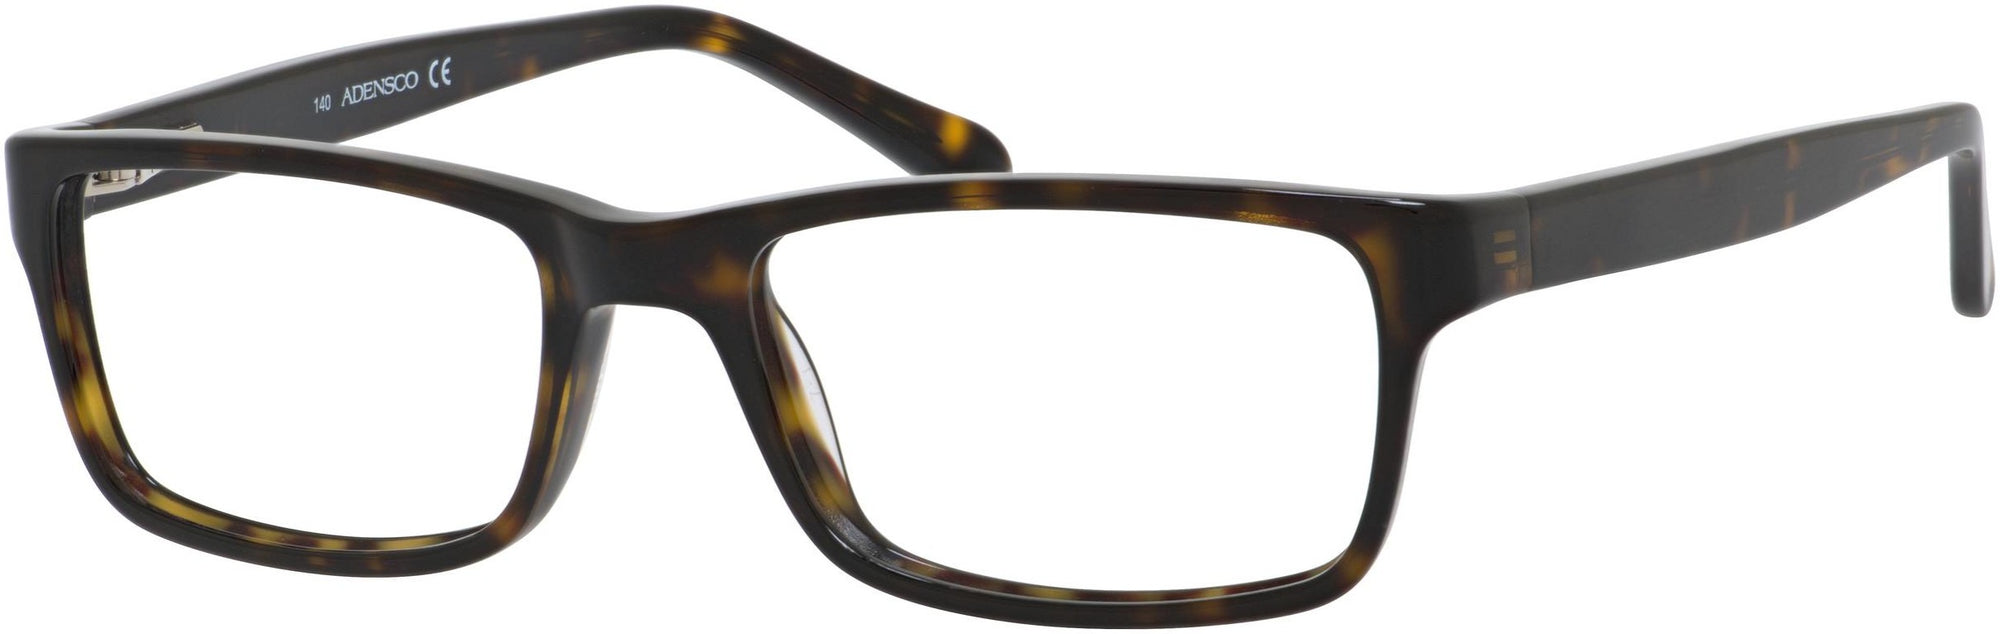 Adensco AD 112 Rectangular Eyeglasses 0086-0086  Dark Havana (00 Demo Lens)